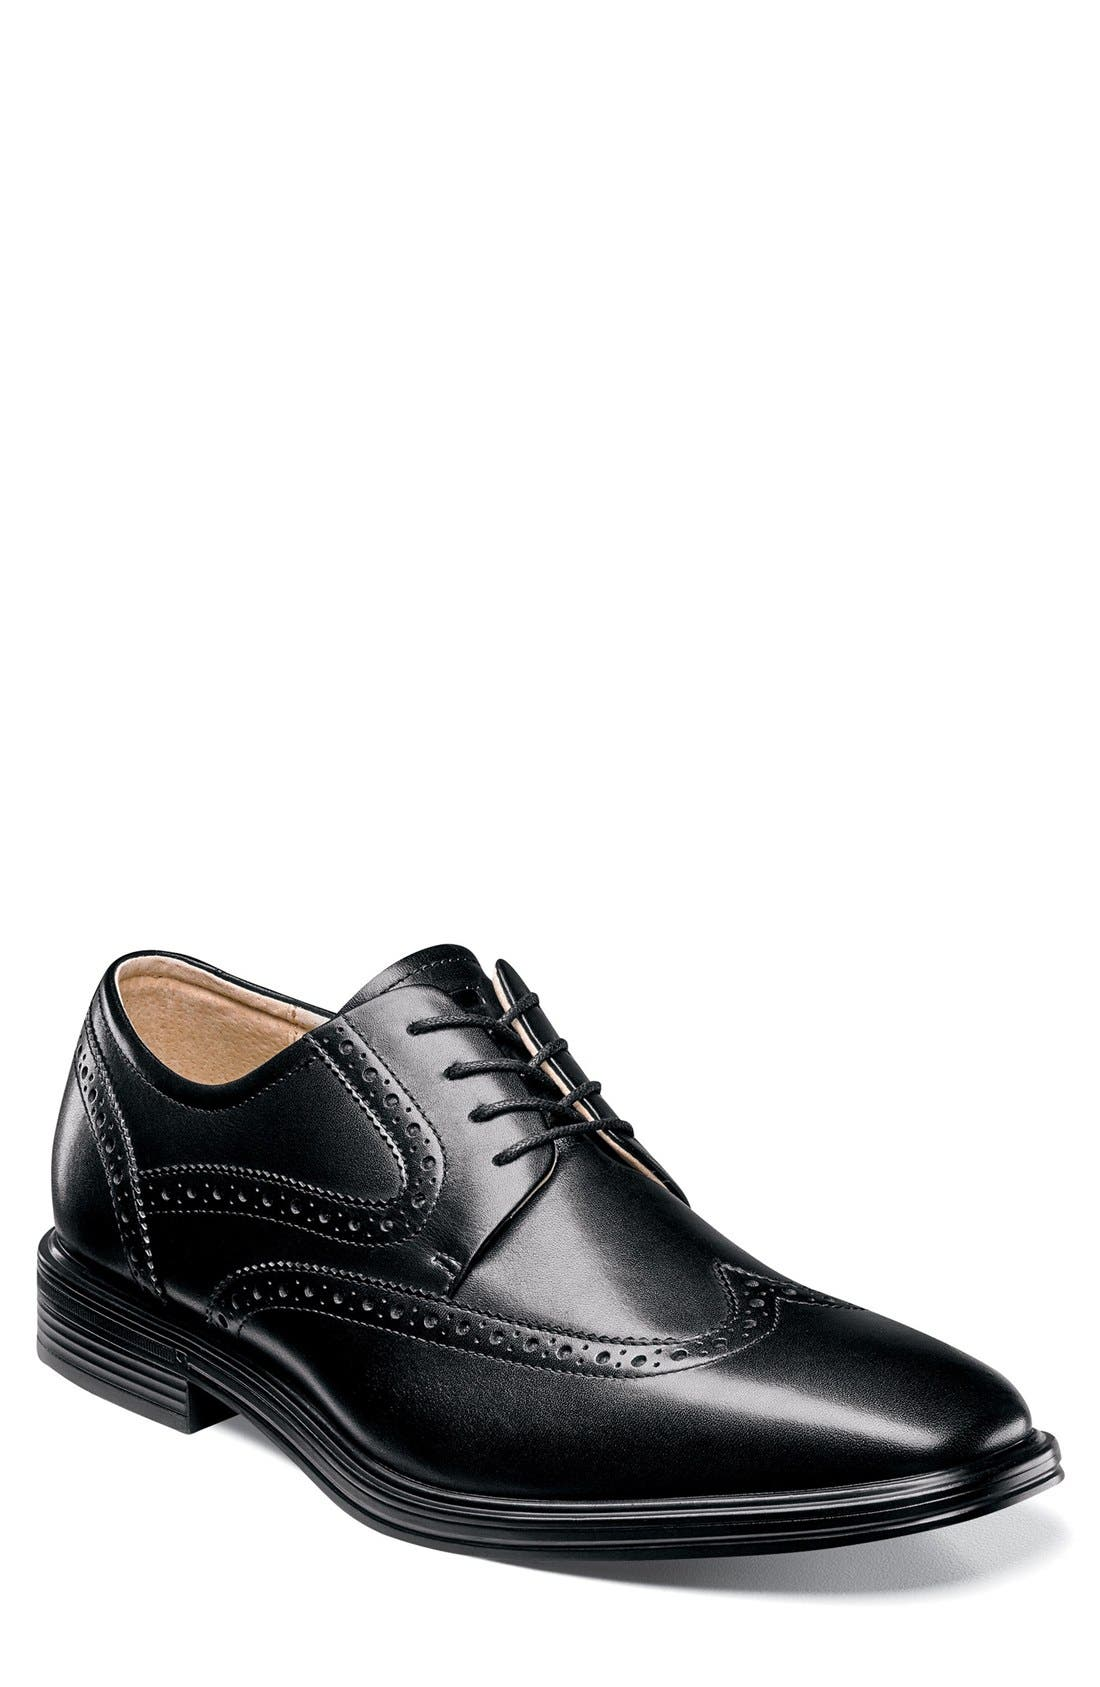 Heights Wingtip,                         Main,                         color, Black Leather